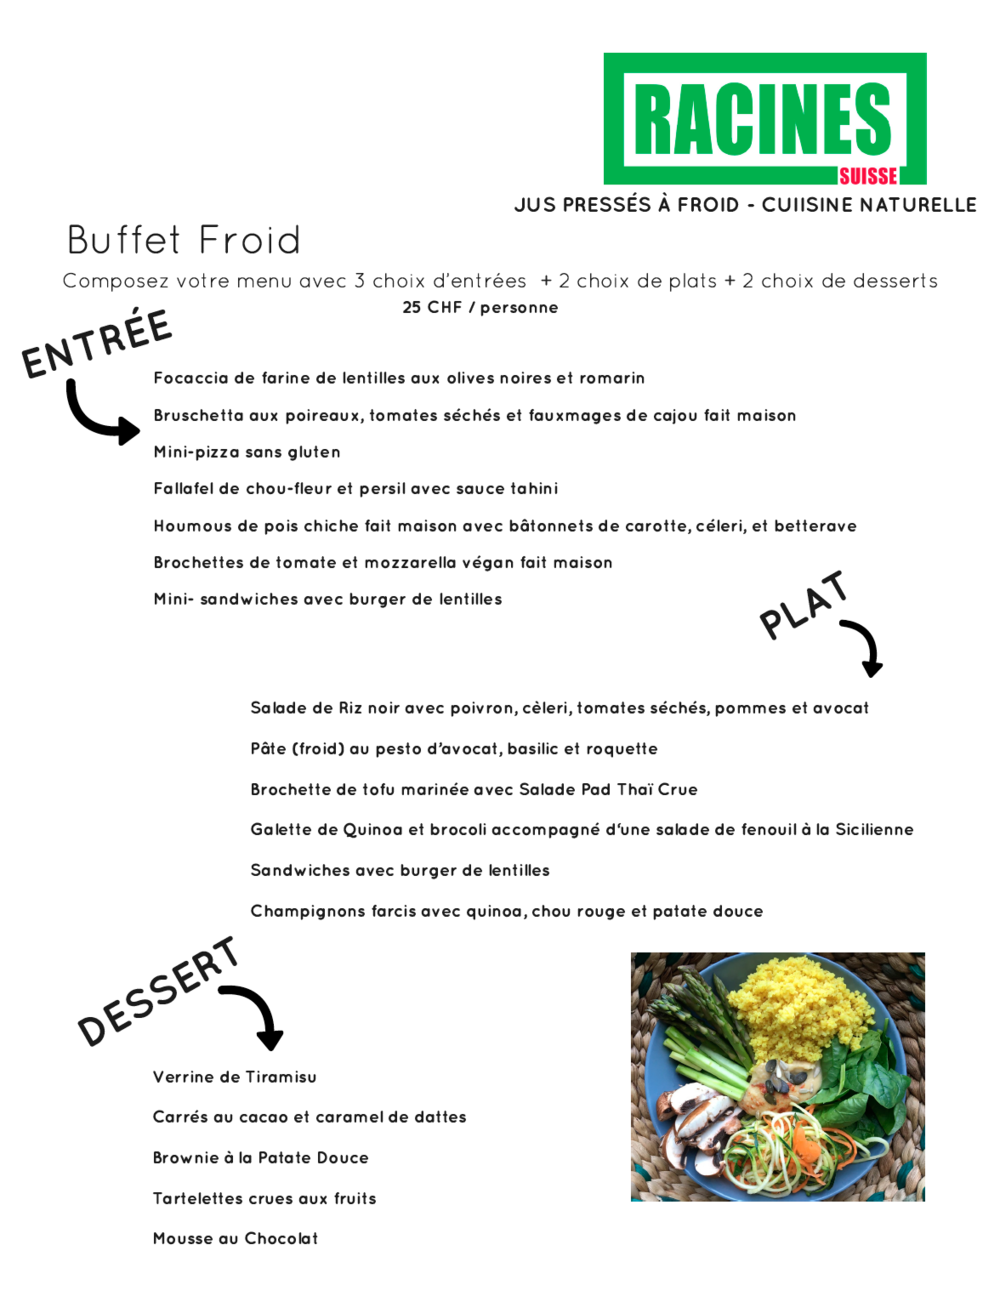 RACINES-Buffet froid.png